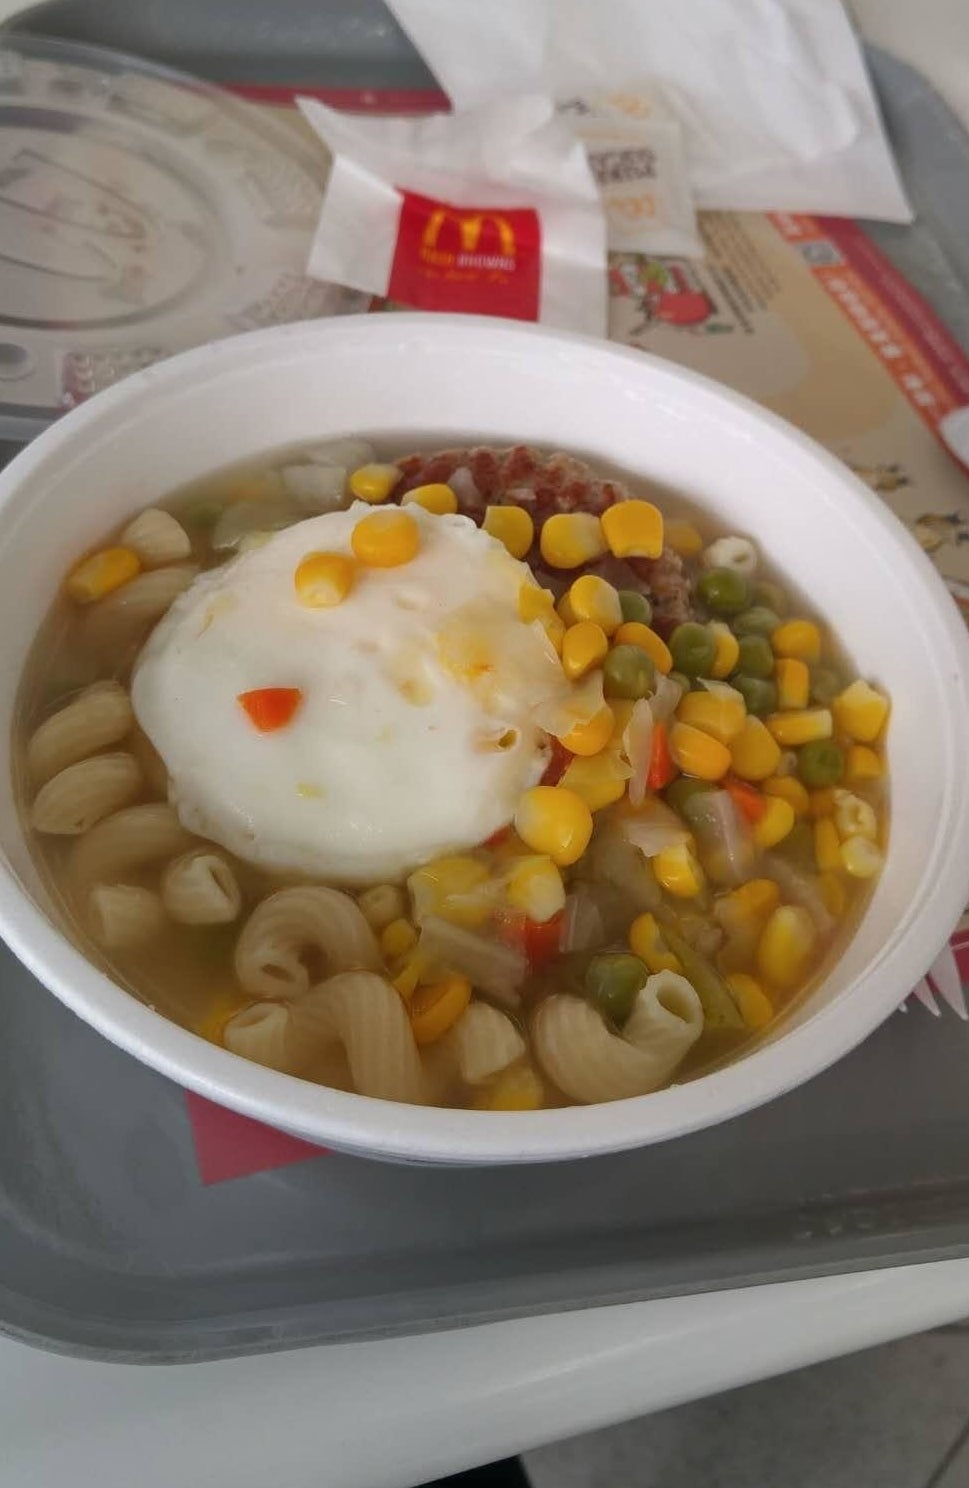 McDonald's breakfast soup with a poached egg.